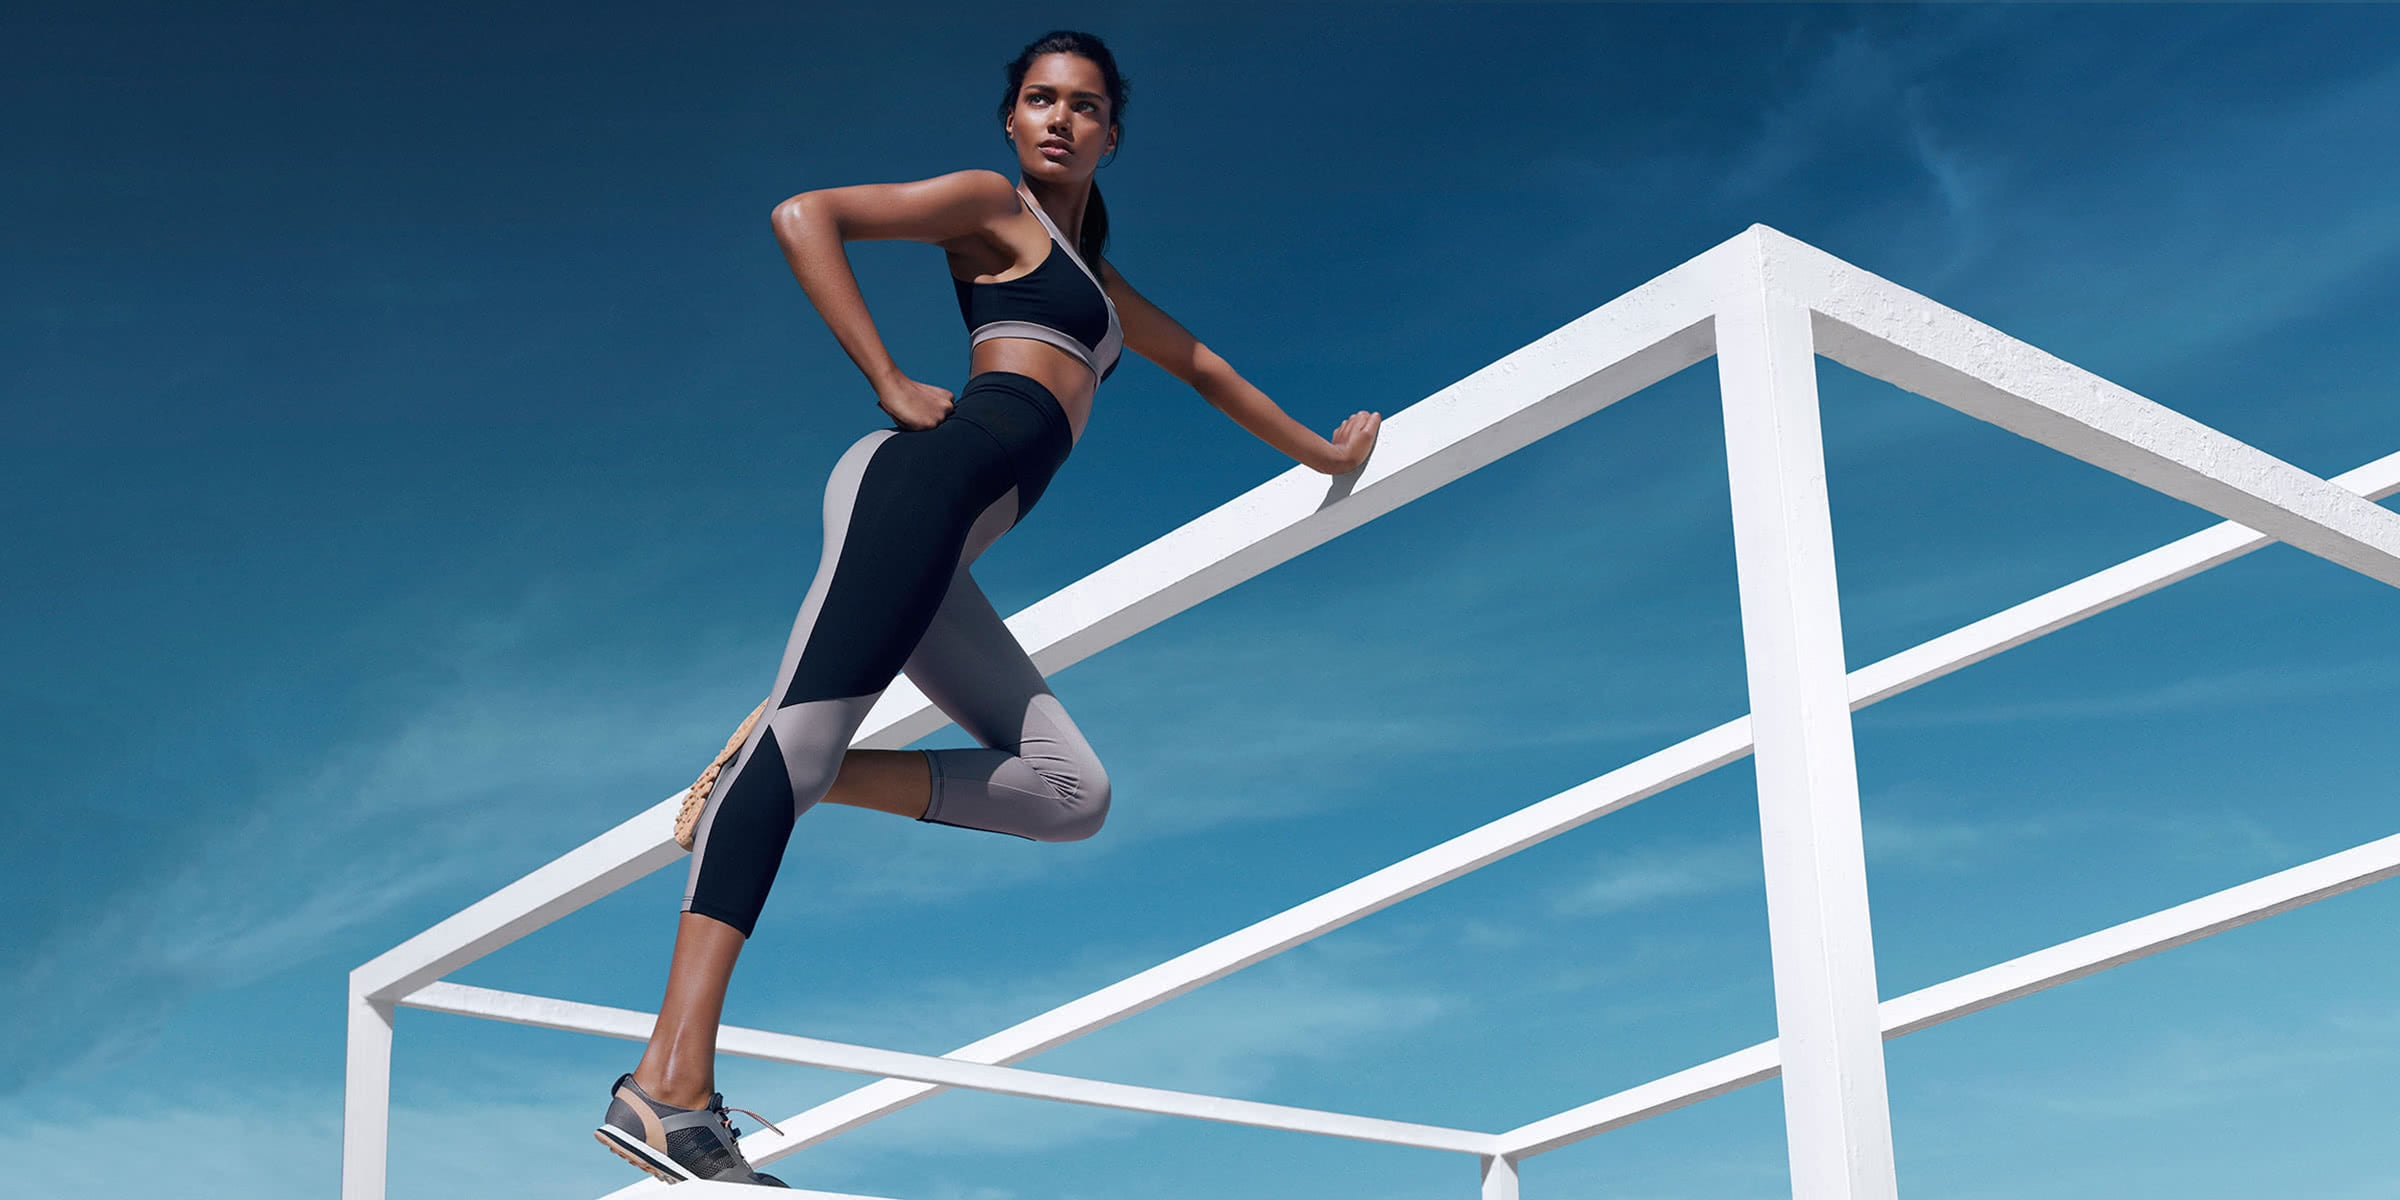 c440bcb044c77 31 Best Women Activewear and Luxury Athleisure Brands (2019 Updated)